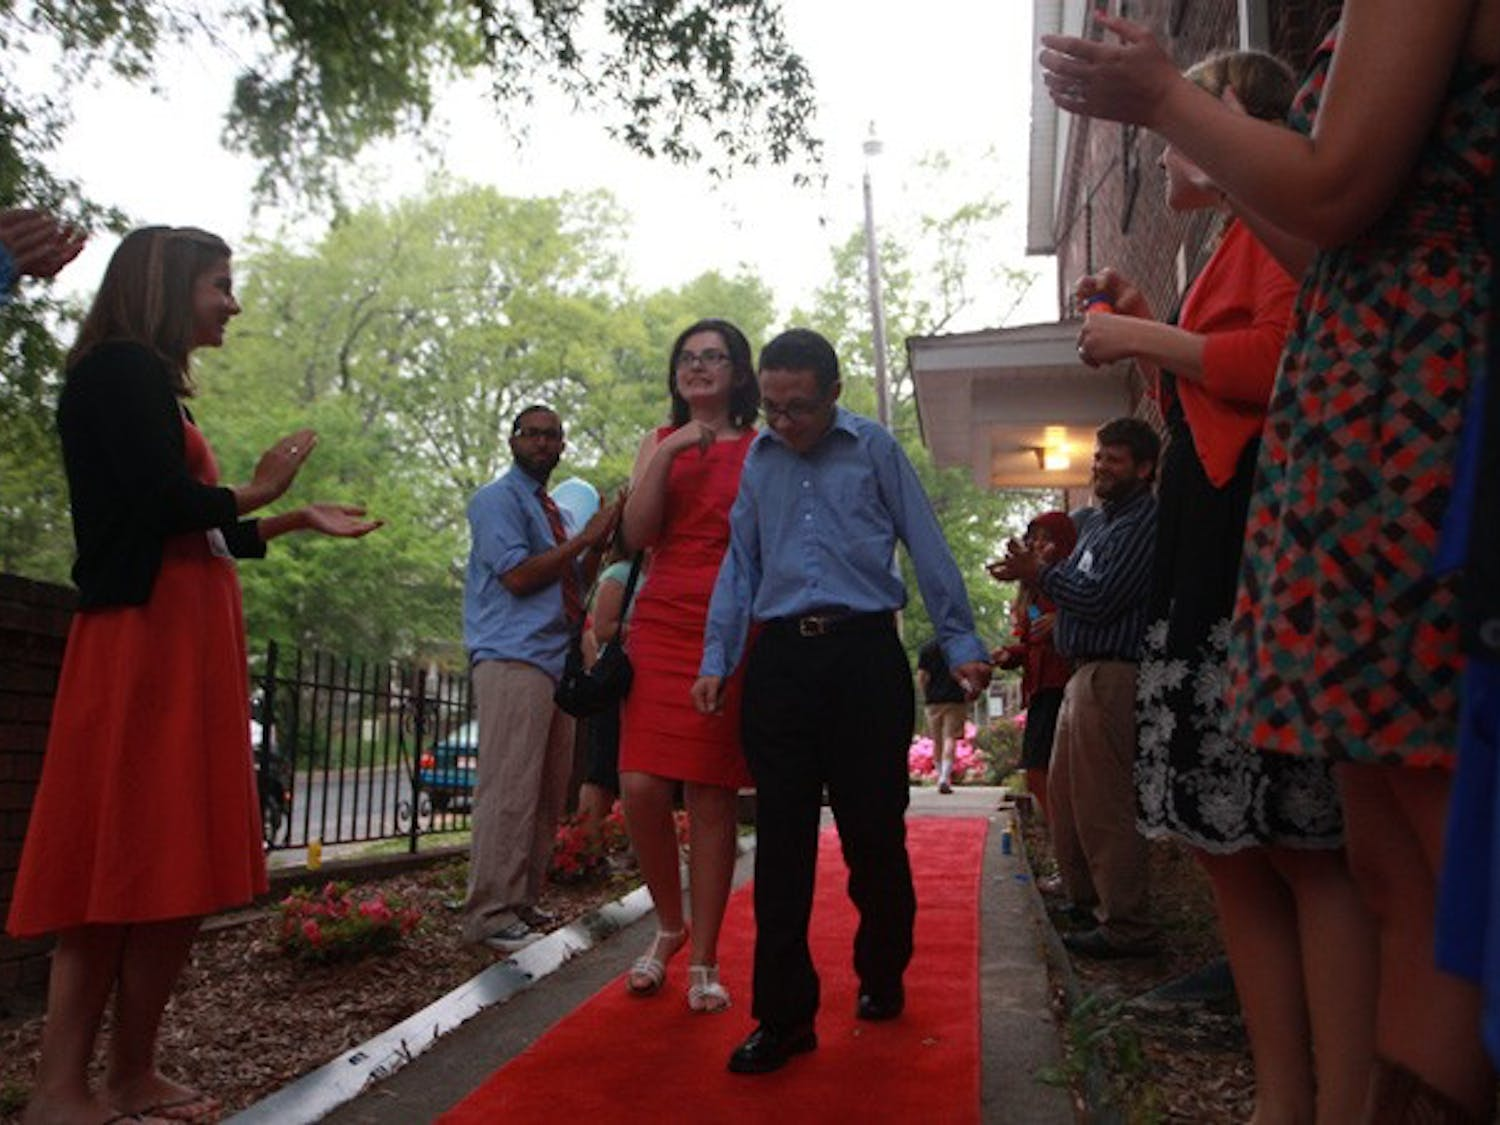 Zoe Kofodimos, 15, and her date, Aaron, are applauded as they walk the red carpet to enter the dance.